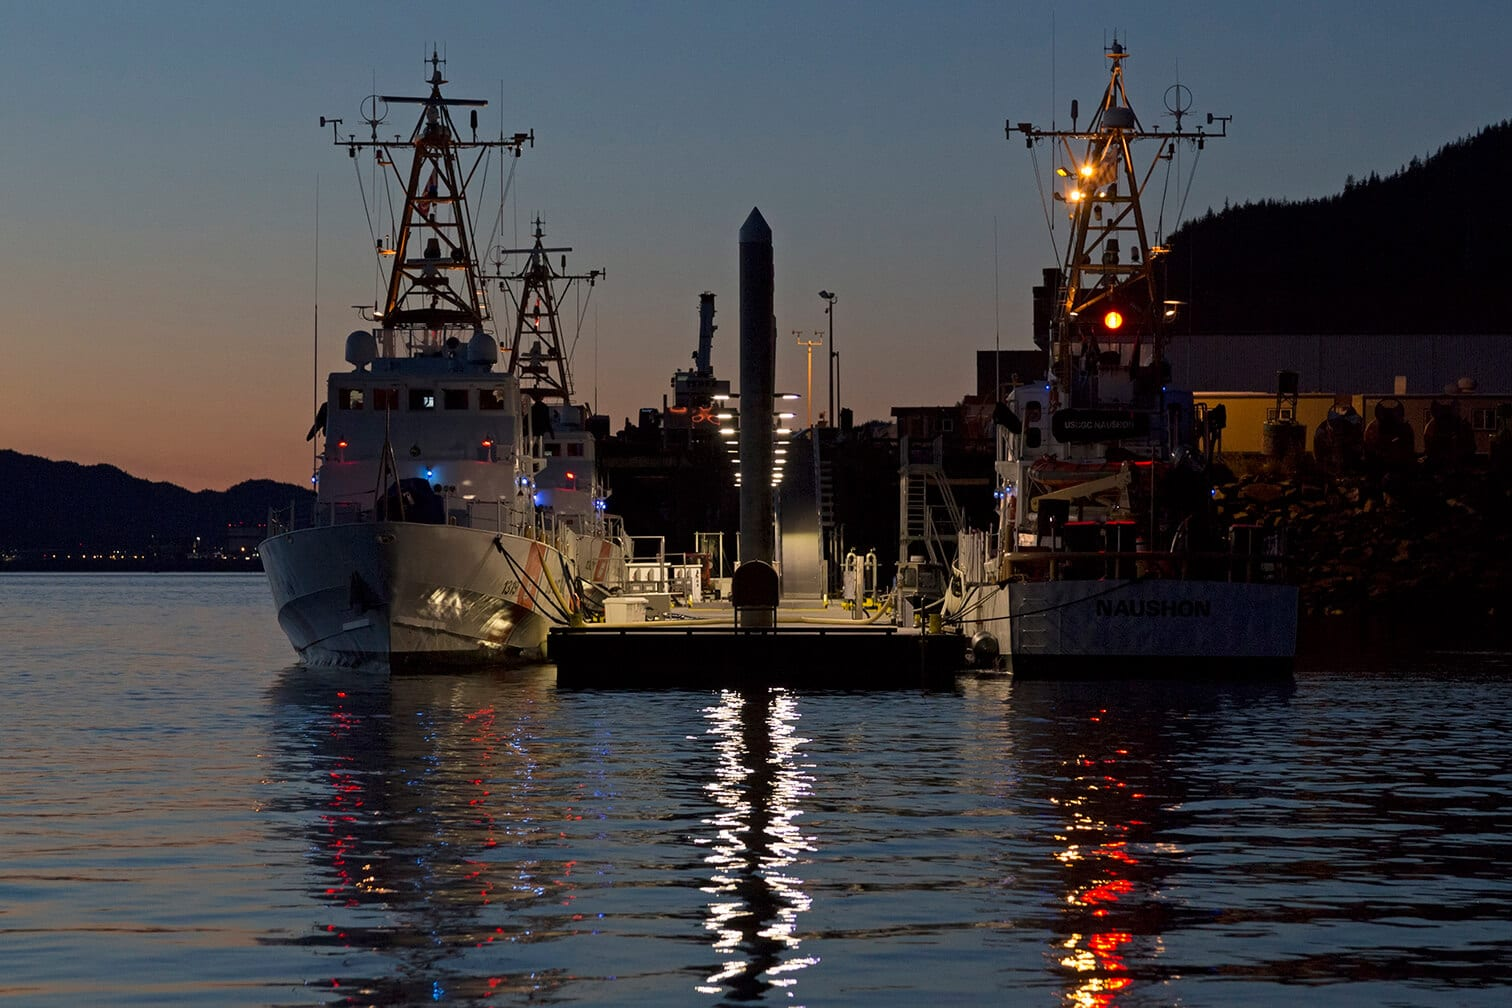 USCG Cutter Homeport at Dusk